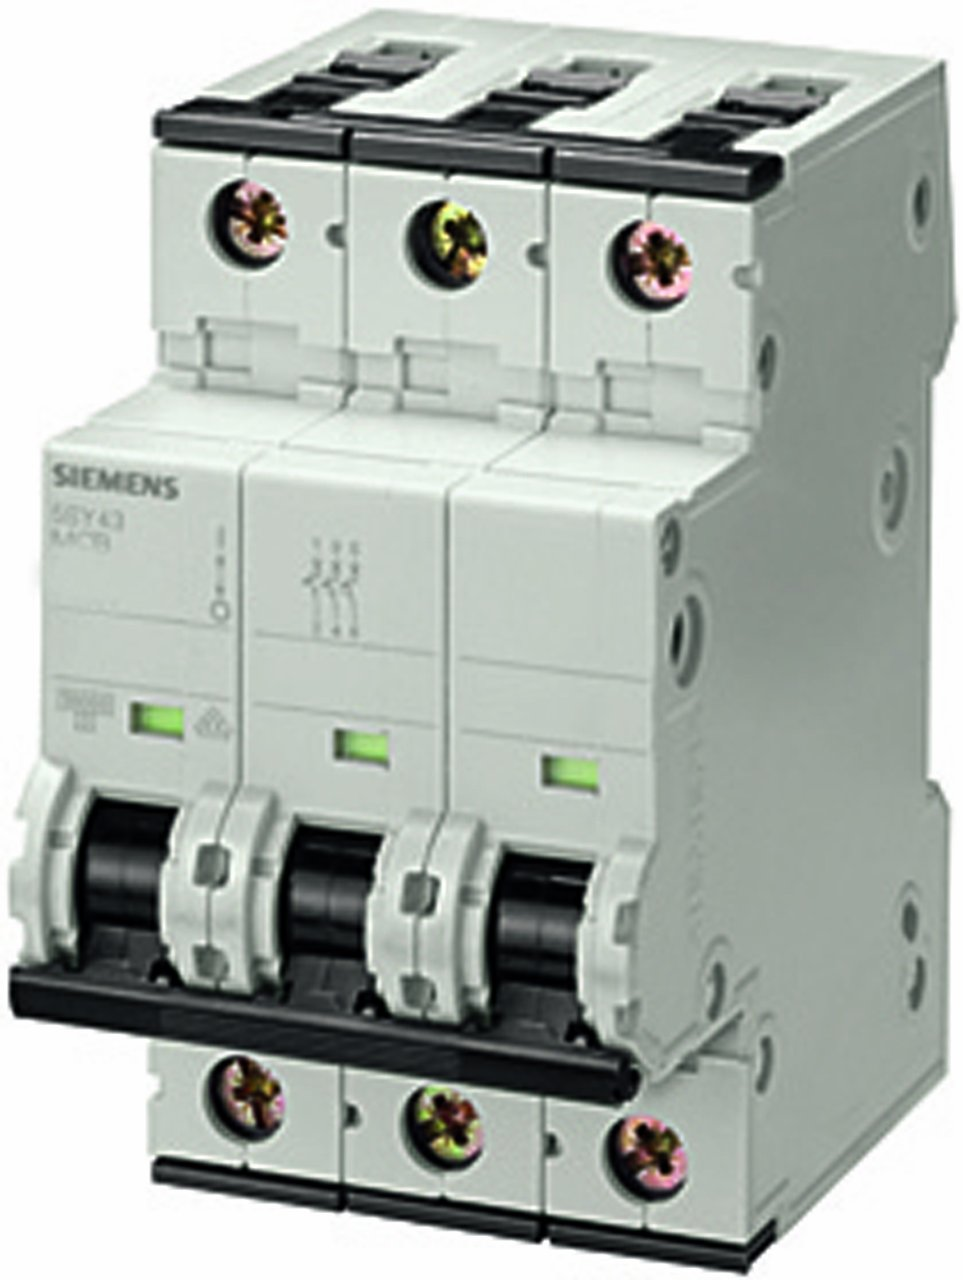 Siemens 5SY43165 Supplementary Protector, UL 1077 Rated, 3 Pole Breaker, 16 Ampere Maximum, Tripping Characteristic A, DIN Rail Mounted